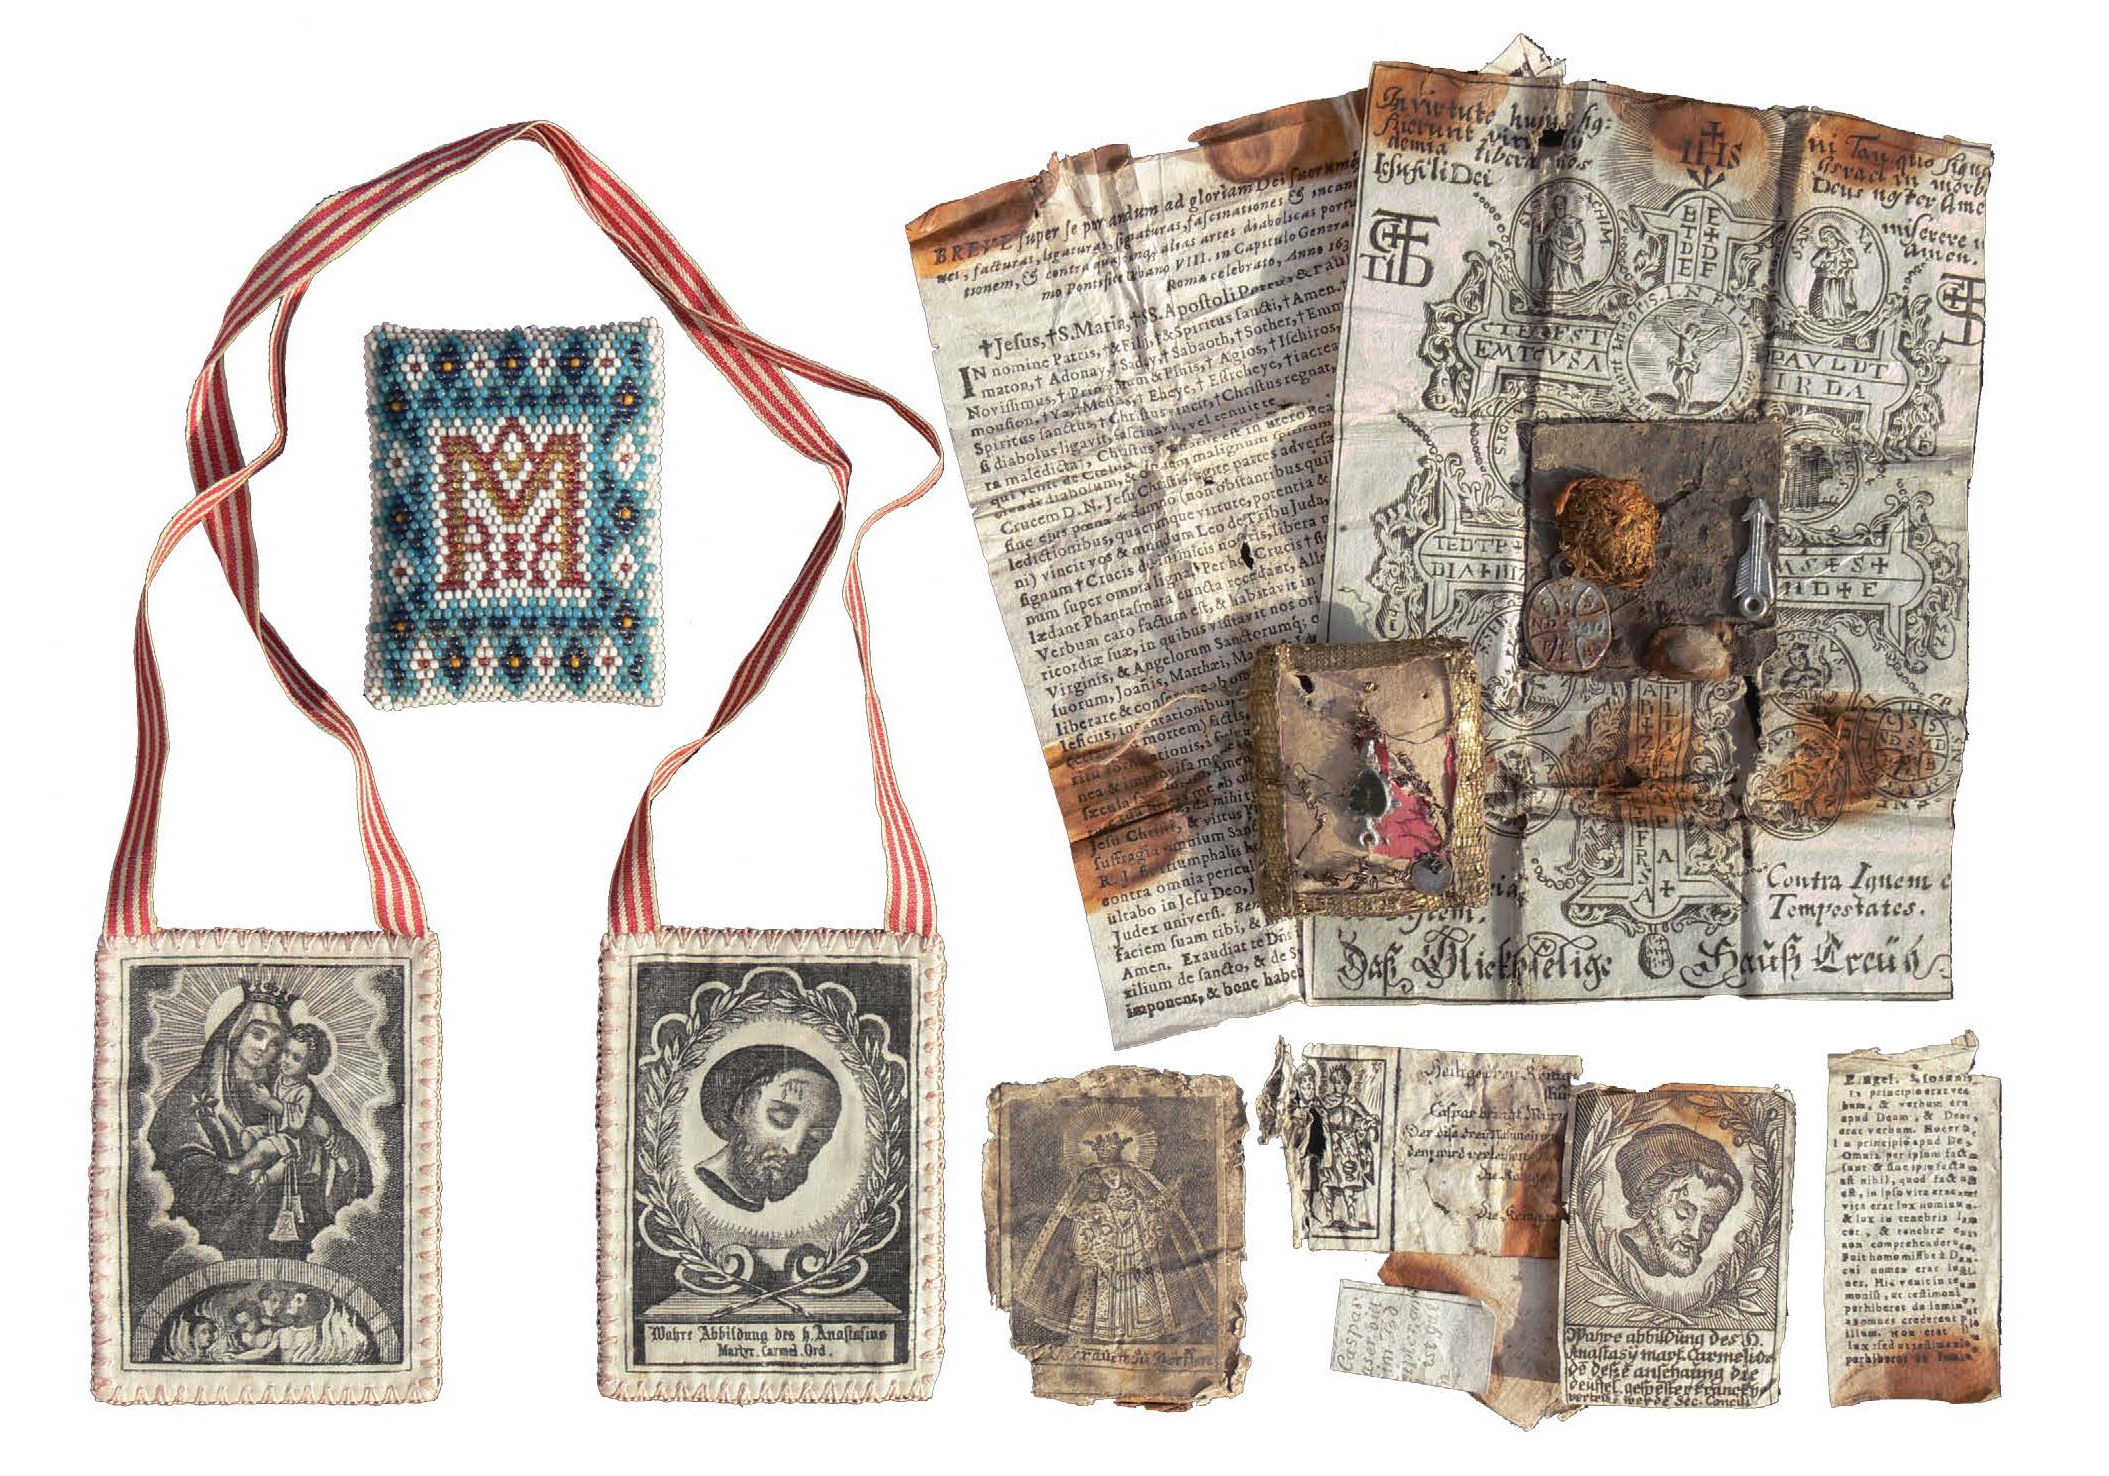 Figure 14:  Right : The contents of an 18th-century European letter of blessing ( Breverl ) which was sealed and worn on one's person.  Left : A scapular worn around the shoulders with images of the saints, as well as an unopened  Breverl , highly embellished with the beaded monogram of the Virgin Mary. Heilman Collection of Patrick J. Donmoyer.